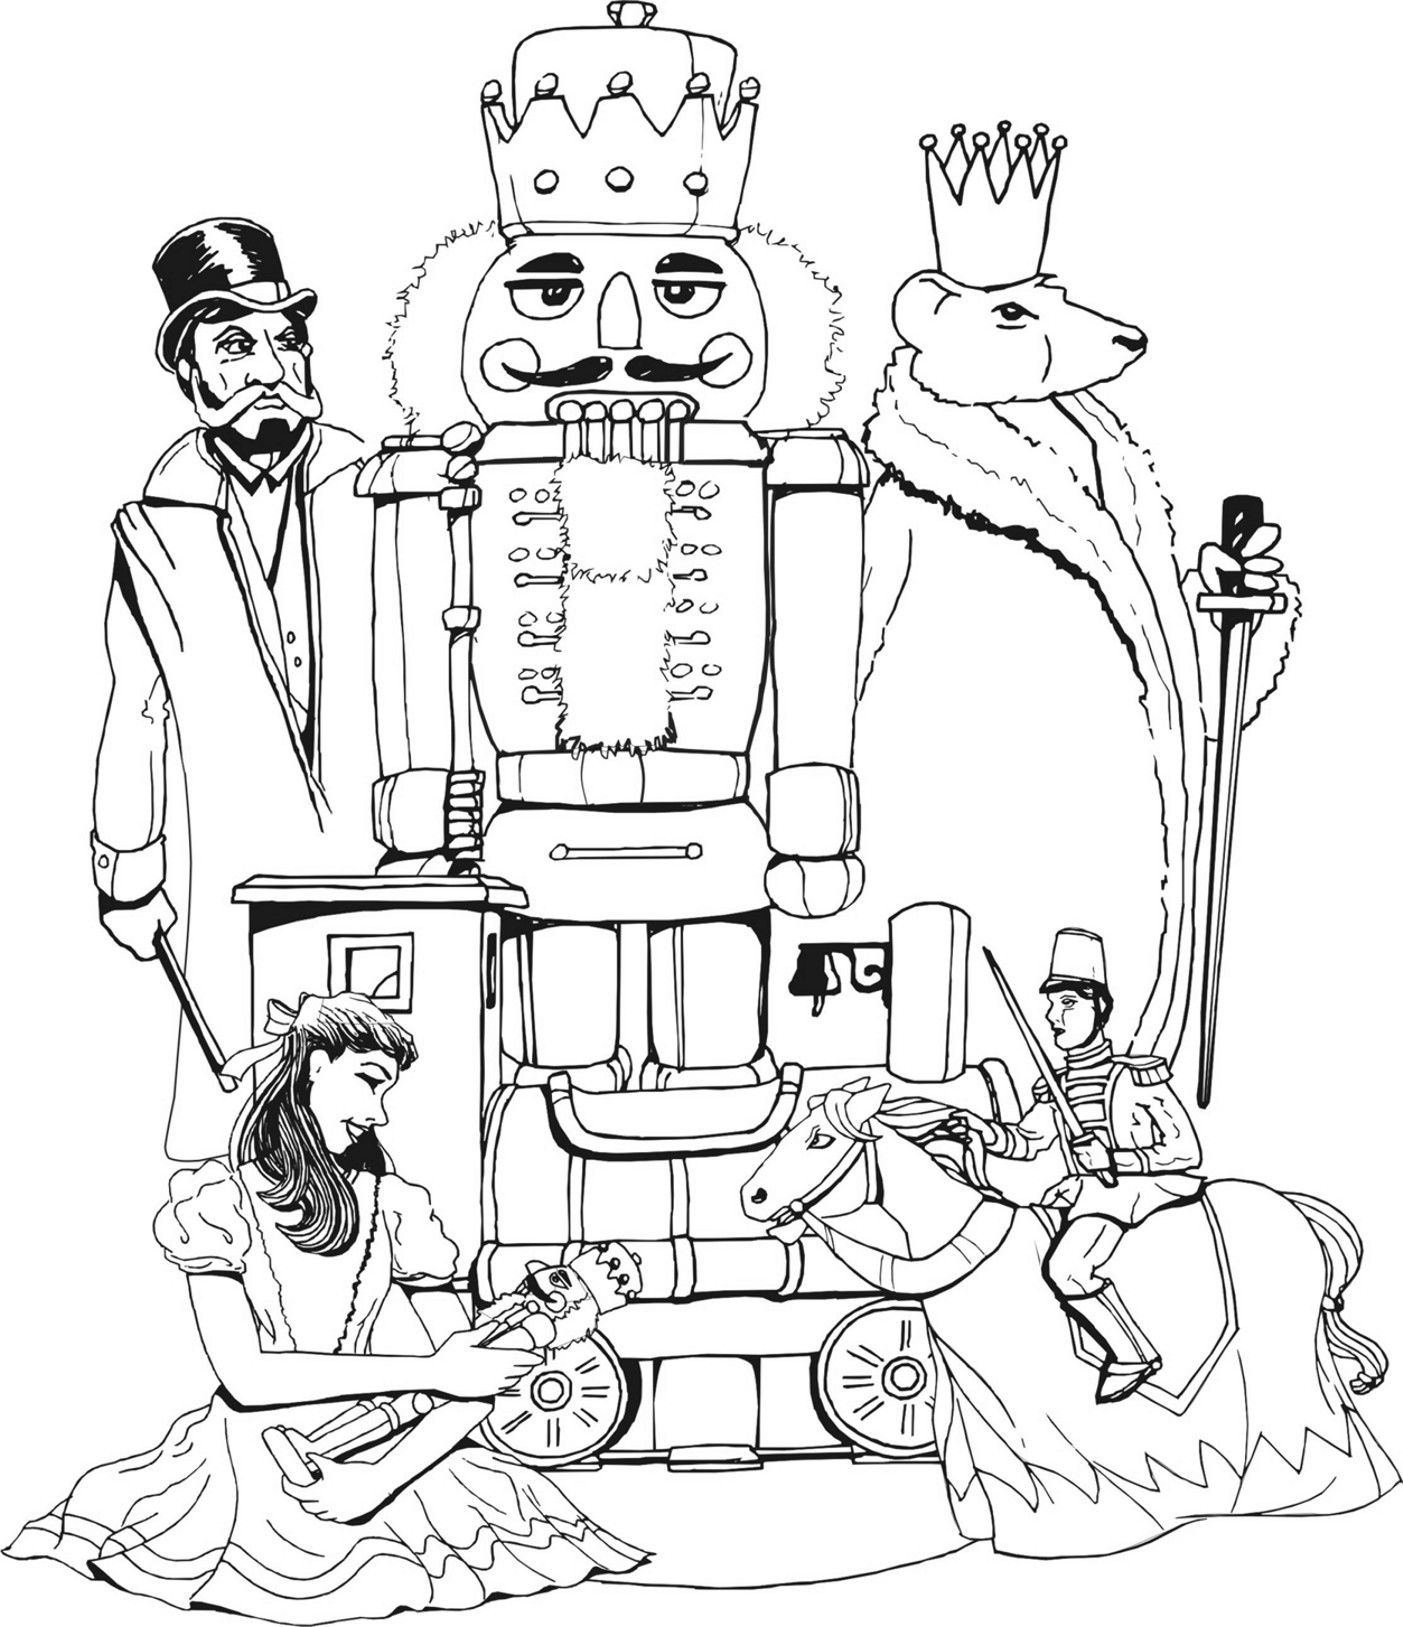 Coloring page to do while listening to Nutcracker | Homeschooling ...